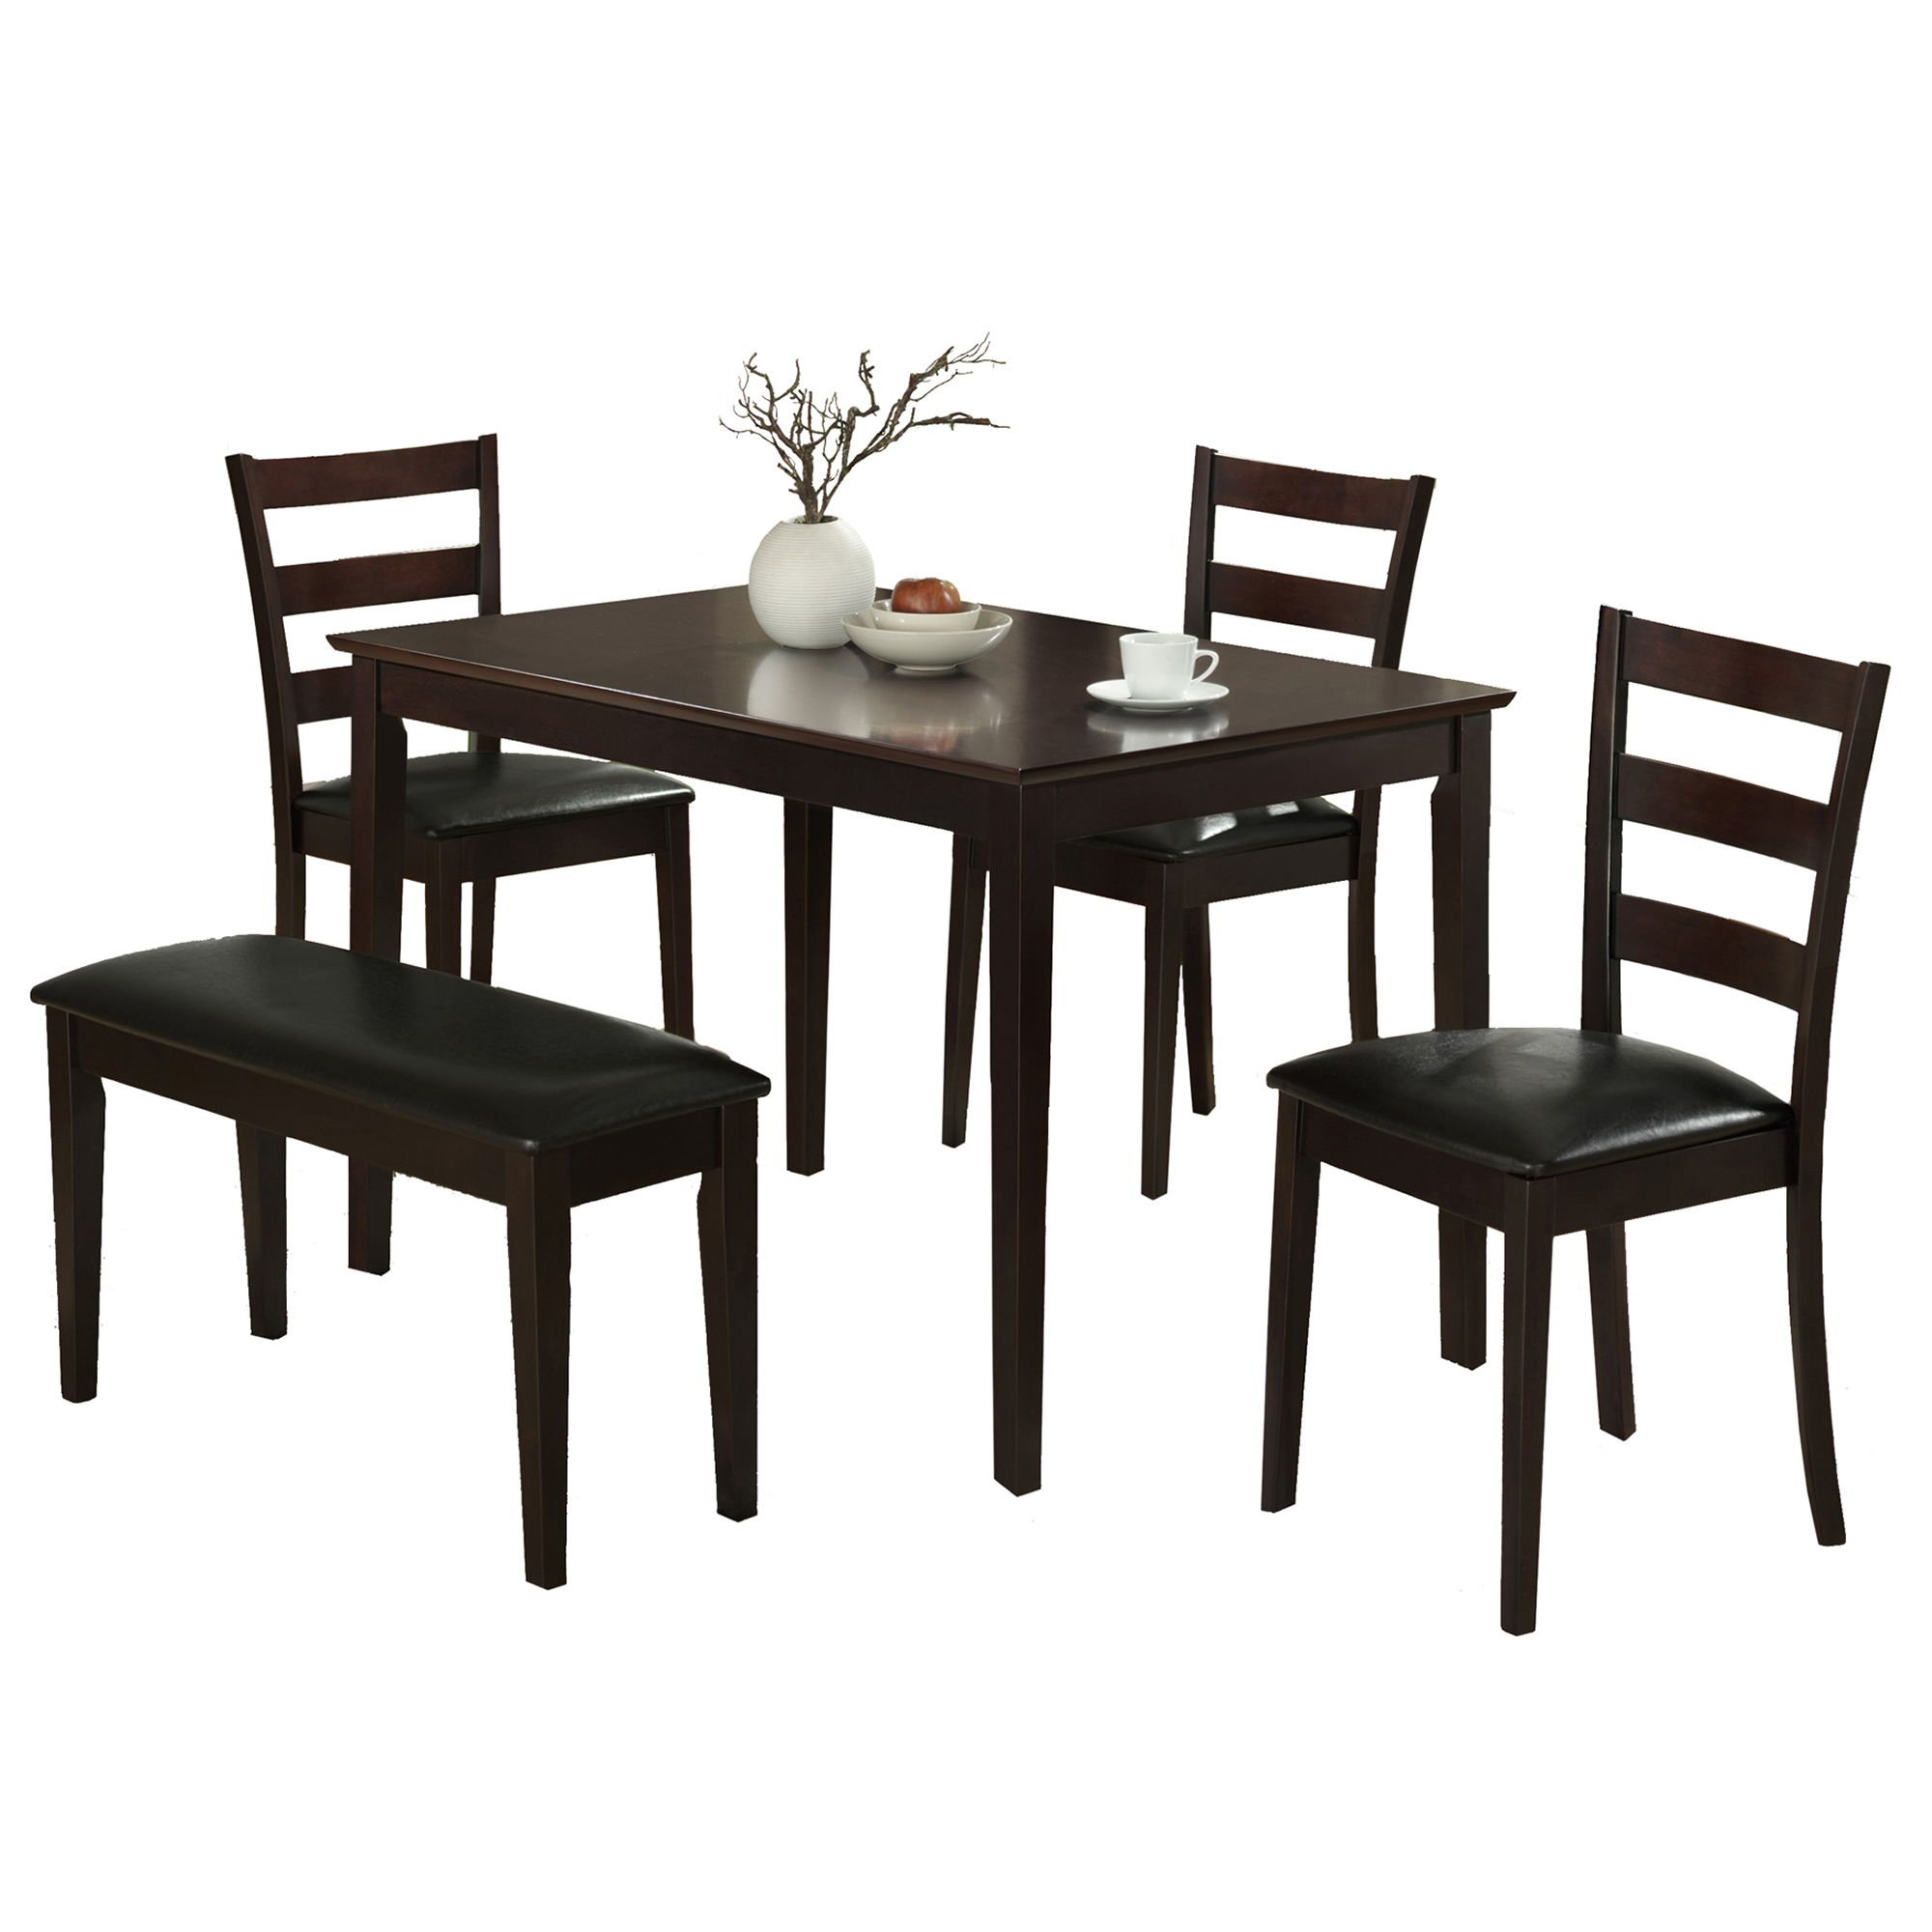 Dining Set - 5 Pieces Set / Cappuccino Bench & 3 Side Chairs